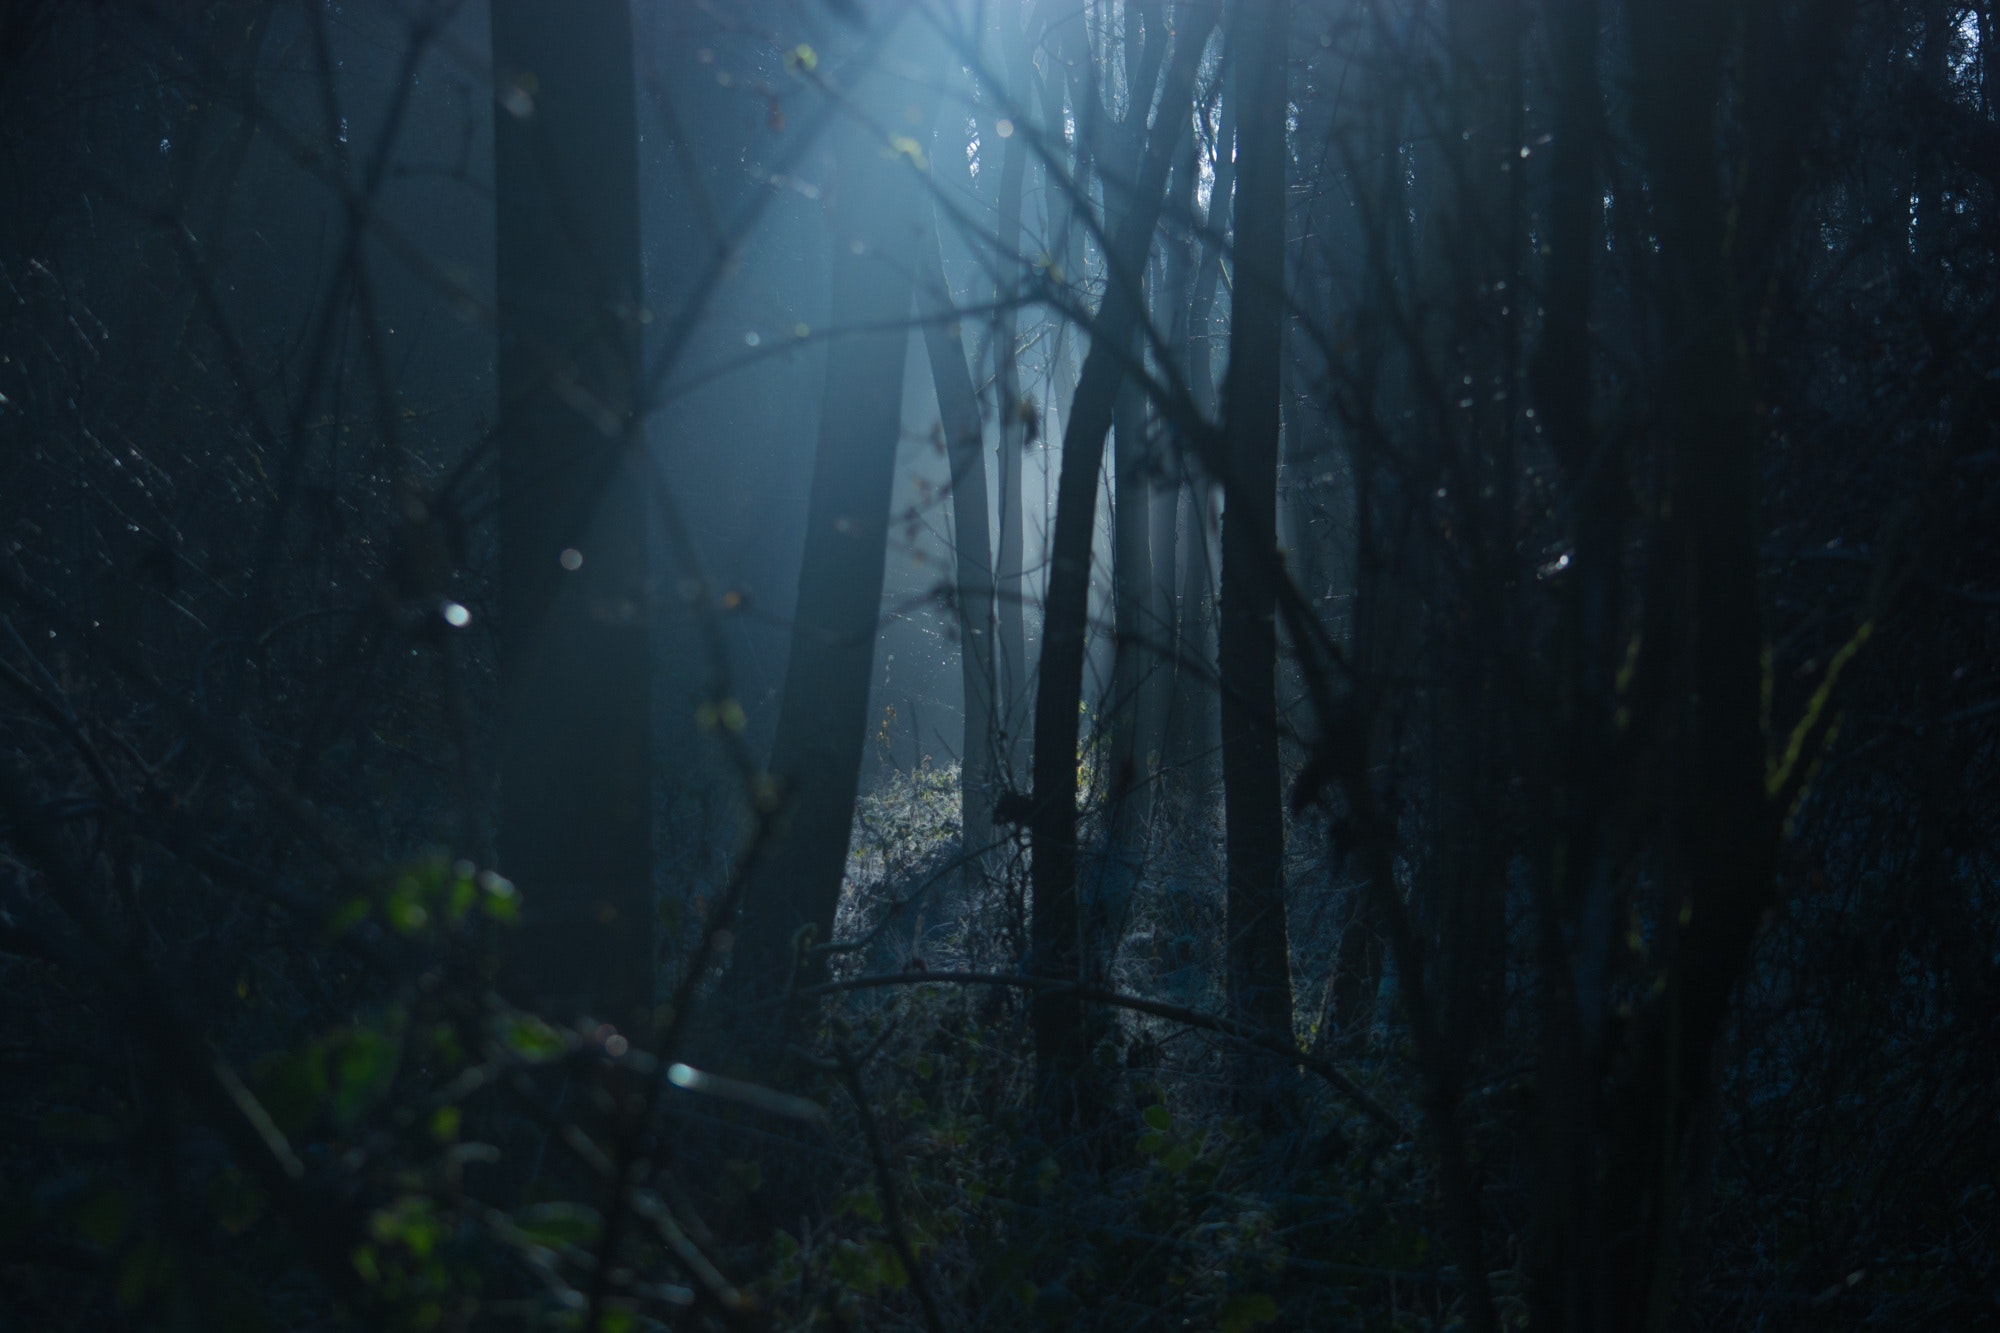 Hunted - In the wilds, hunted and alone.Driev has to get to safety, but will he make it out alive?